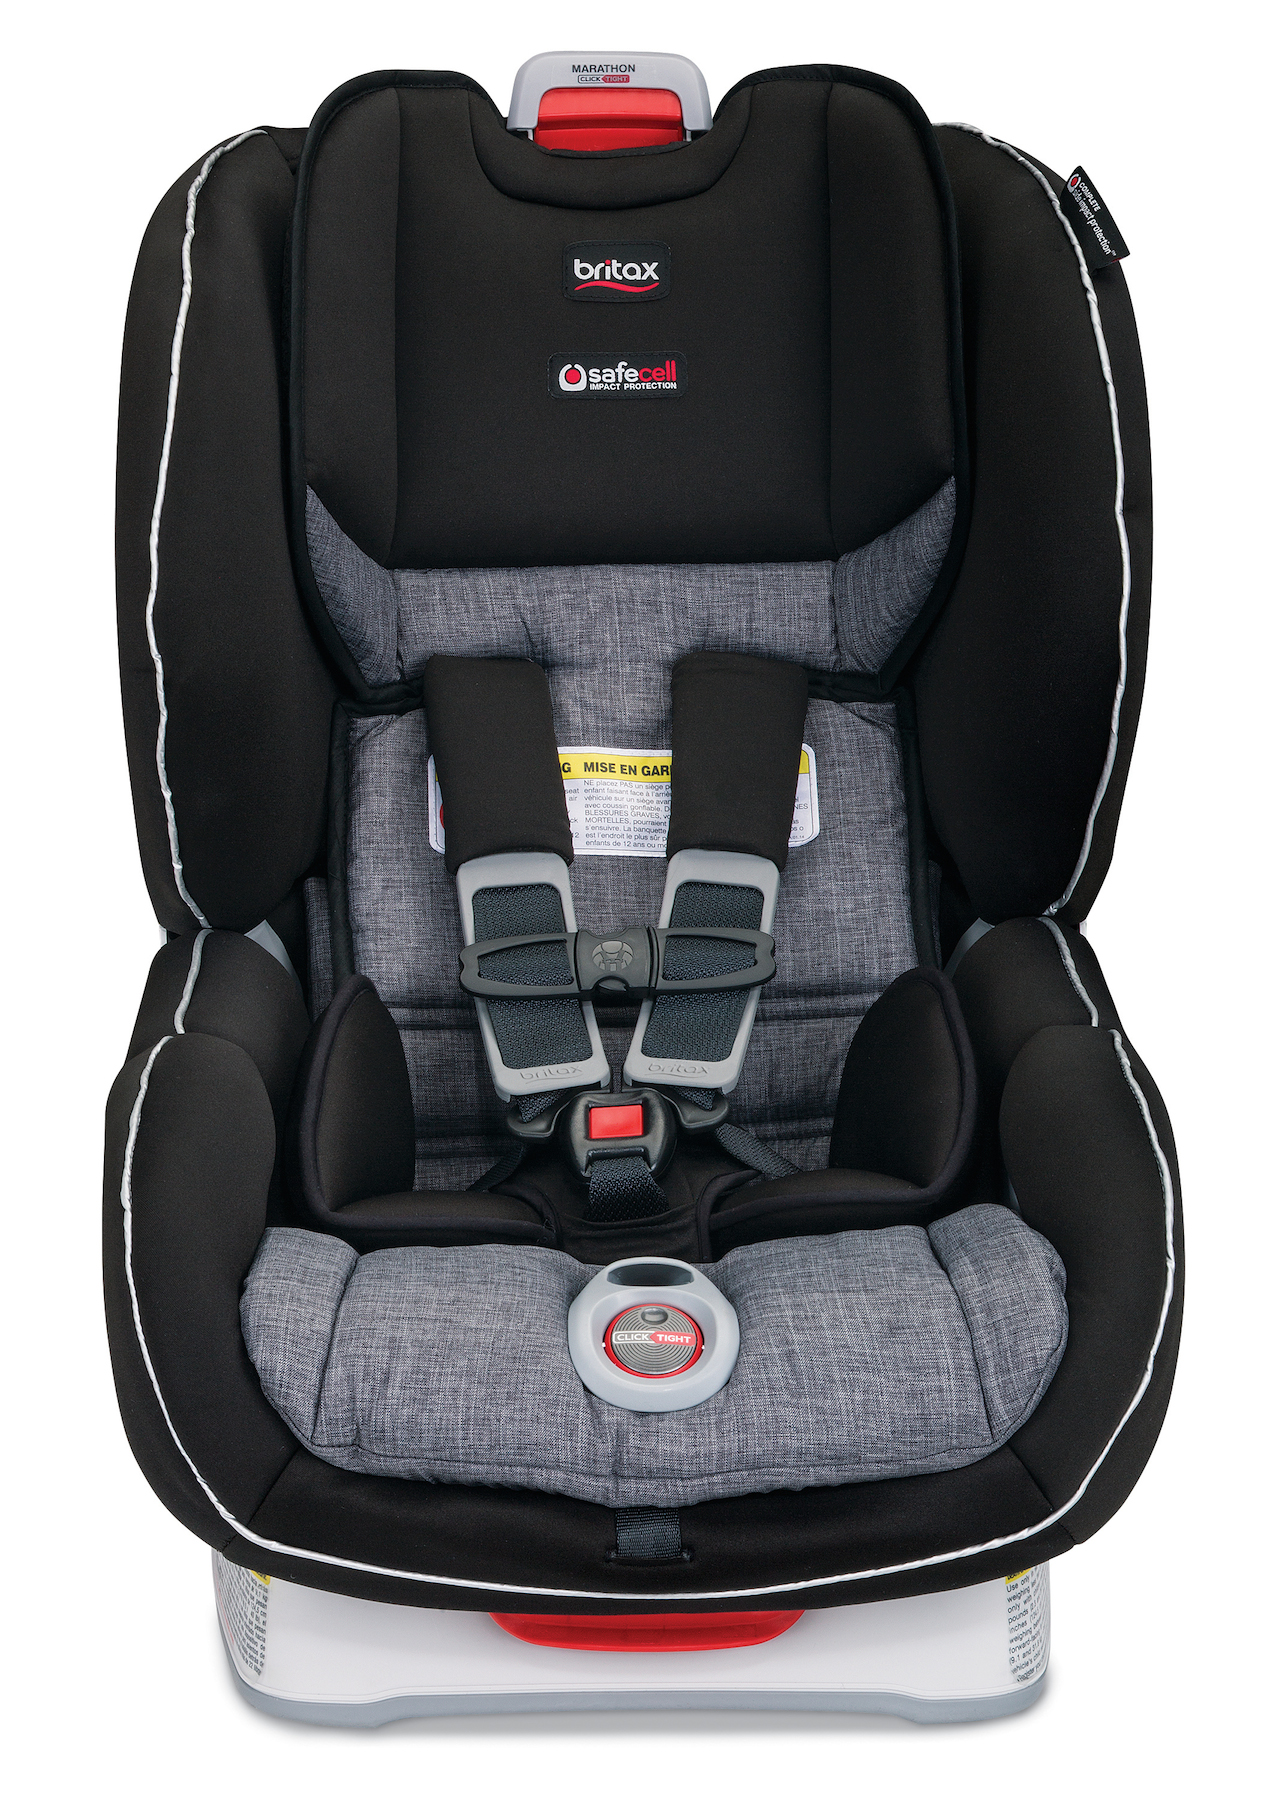 Source Seat Most Trusted CarseatblogThe For Car ReviewsRatings cTlJ3F1K